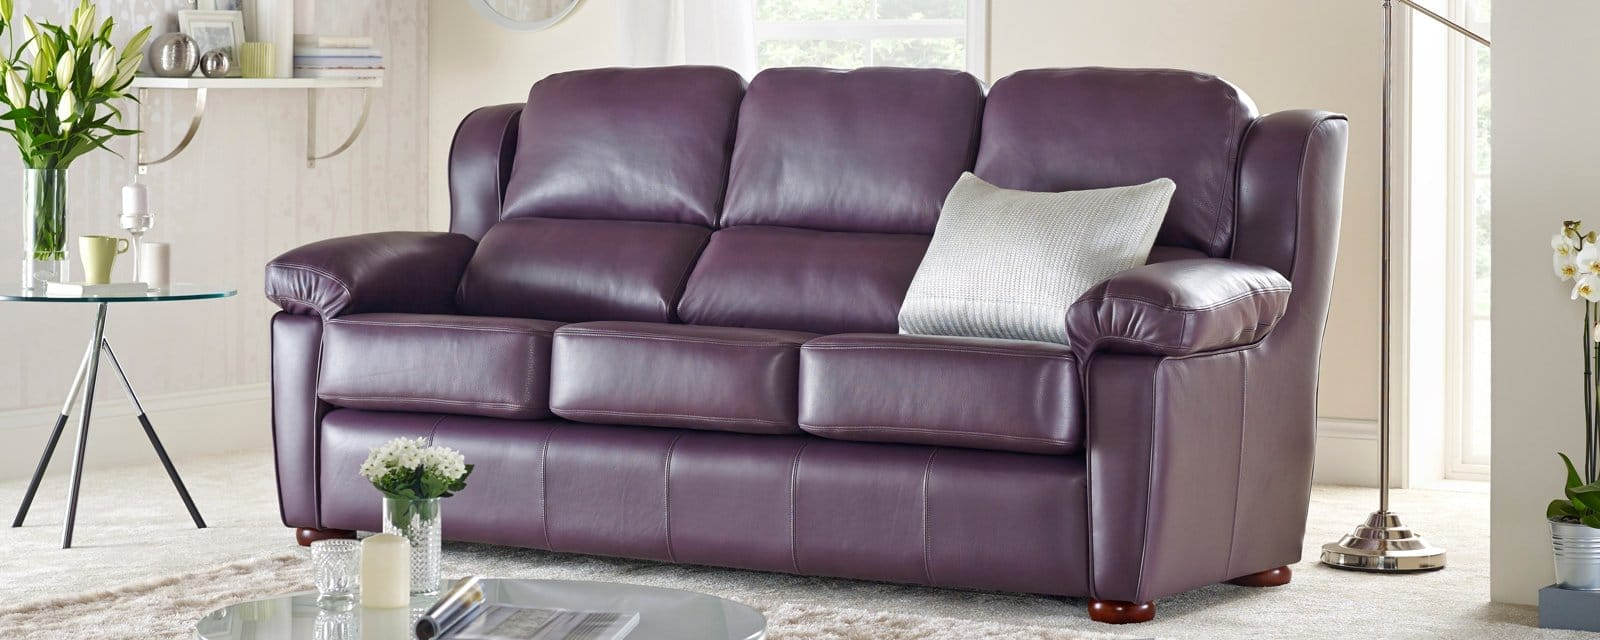 romsey 2 seater sofa from sofas by saxon uk. Black Bedroom Furniture Sets. Home Design Ideas